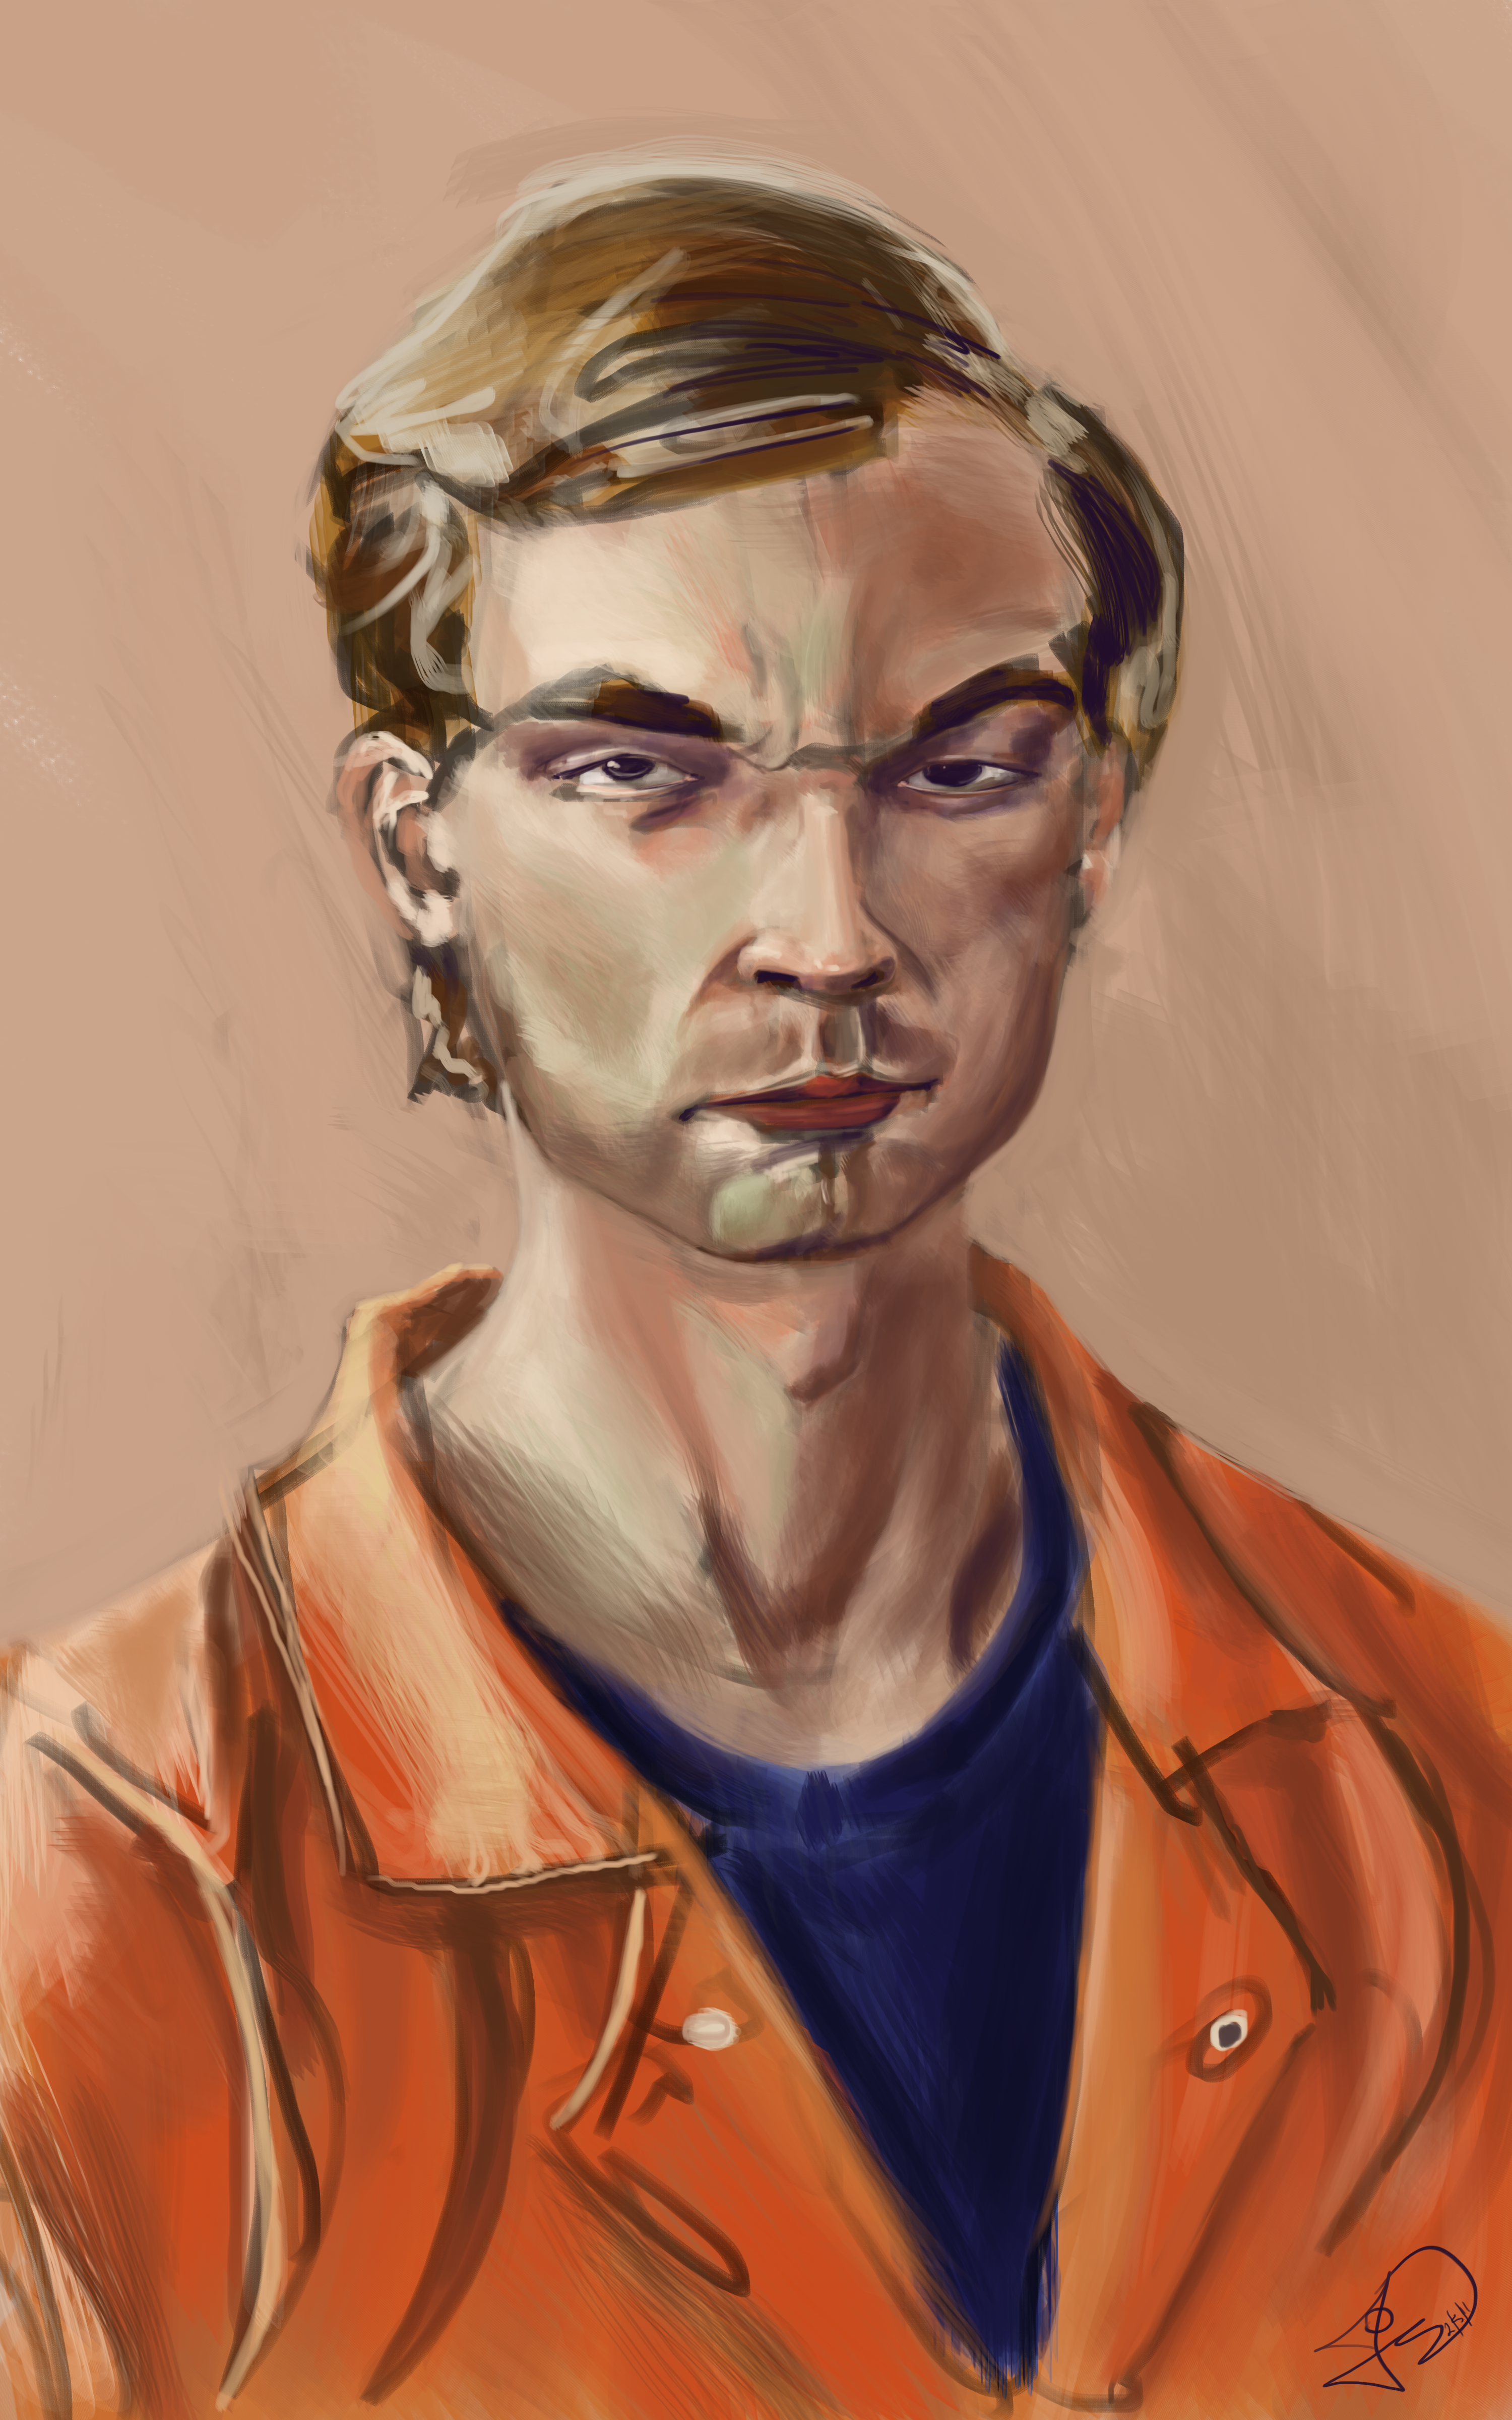 jeffery dahmer Jeffery dahmer is a notorious serial killer that terrorized milwaukee from 1978 to 1991 his victims were dismembered and buried it is said that some of his sufferers were eaten however he denies that it was a habit.